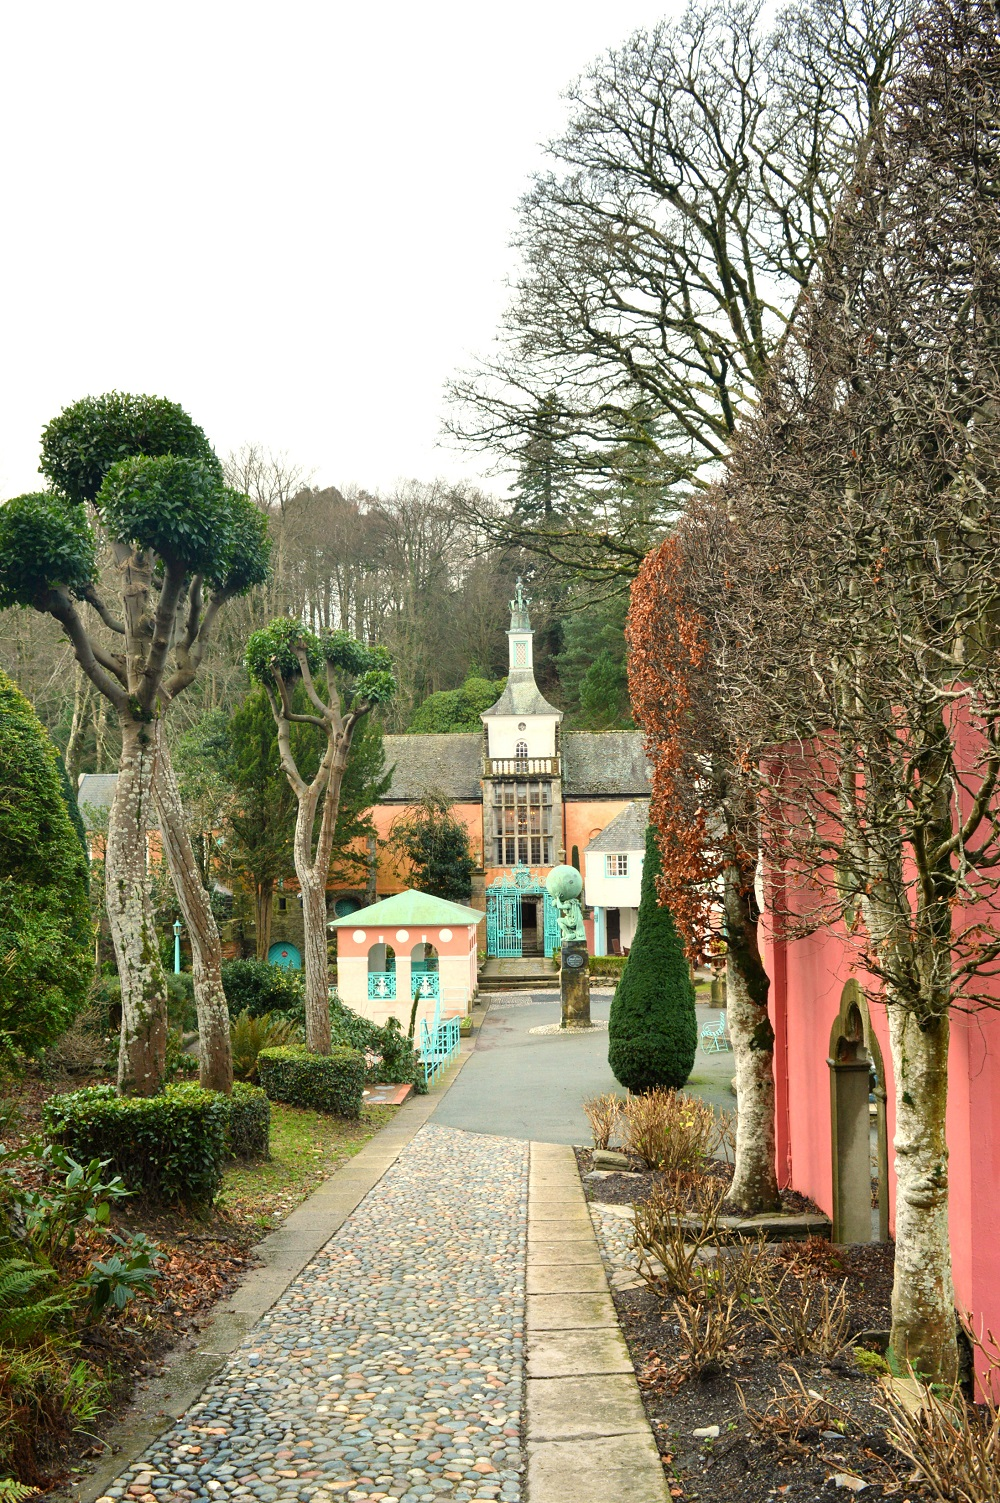 Places to stay: Portmeirion village, Snowdonia